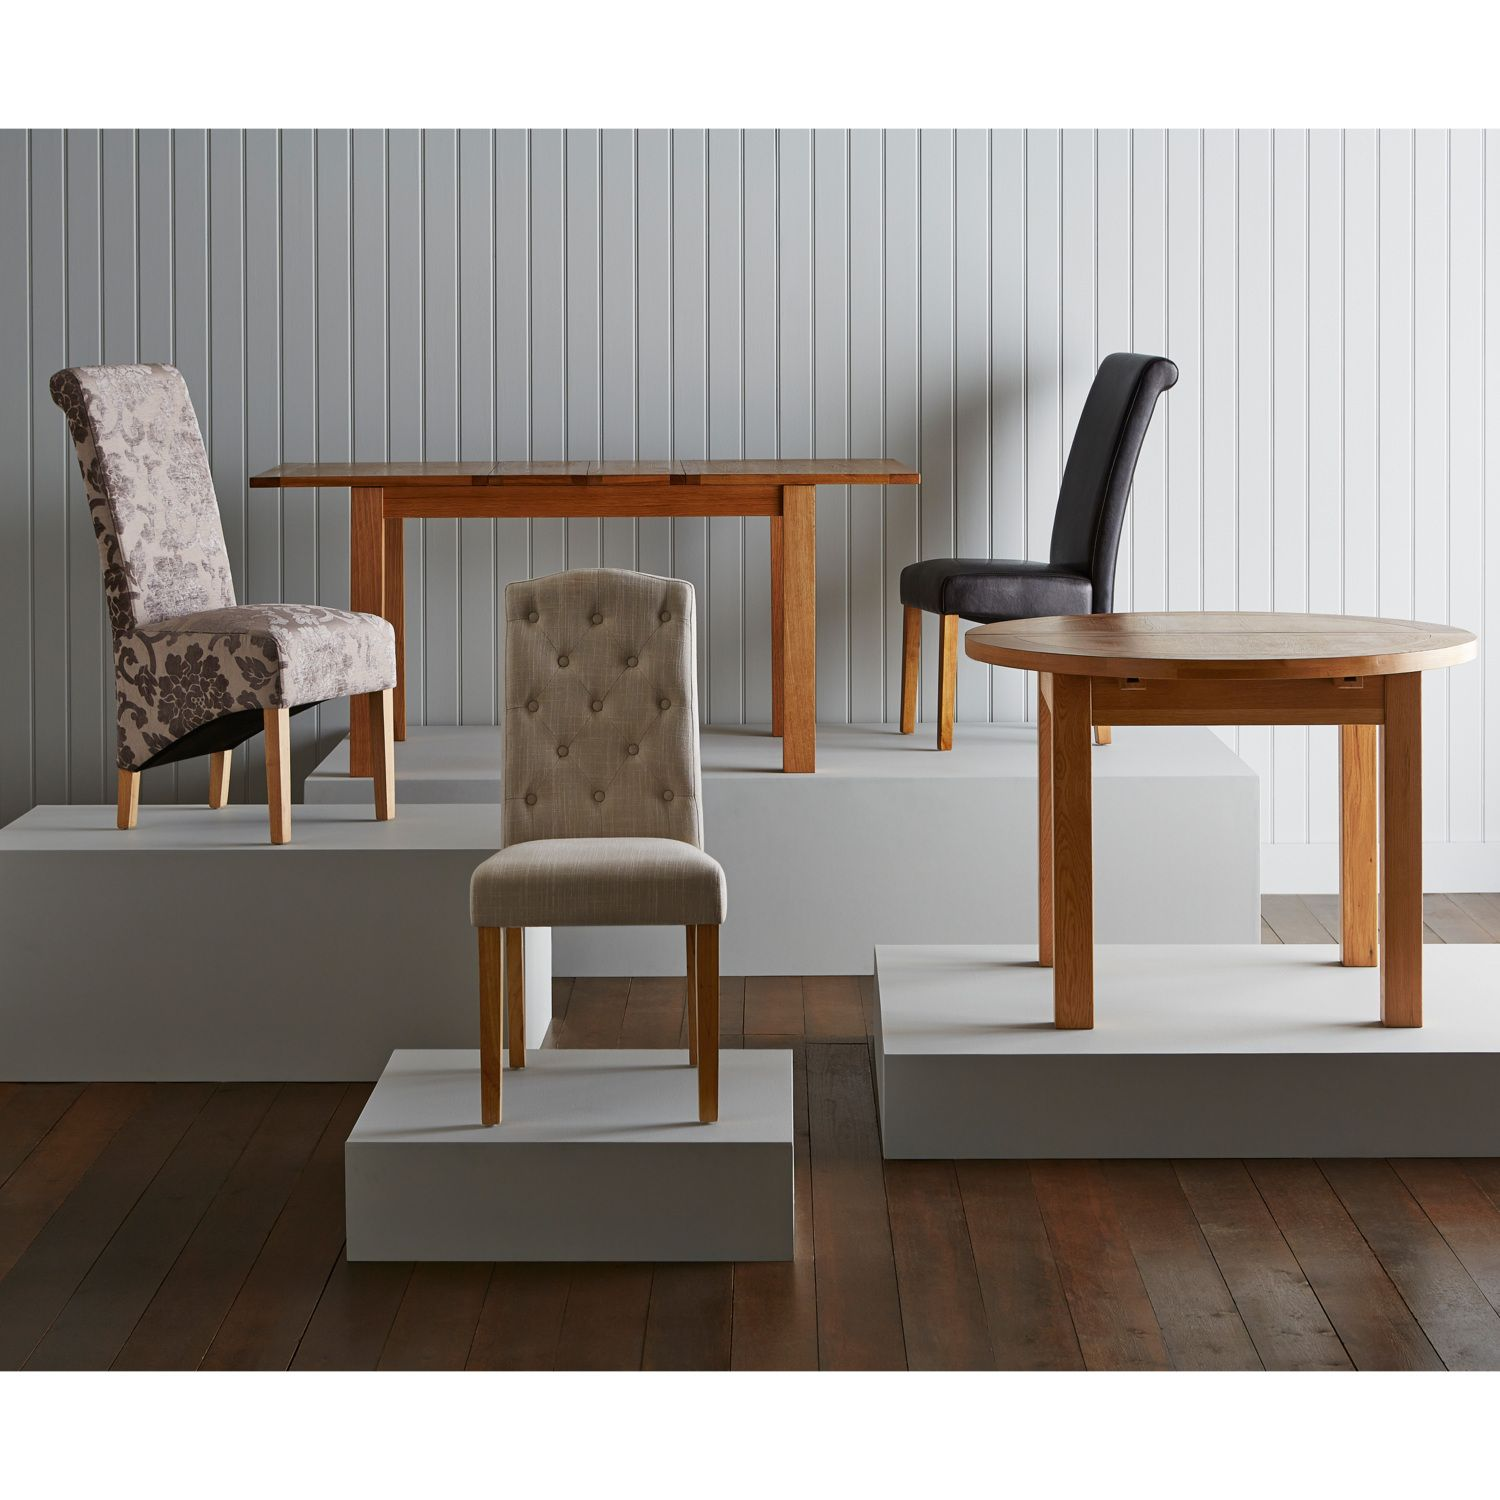 38++ Living room accessories the range ideas in 2021